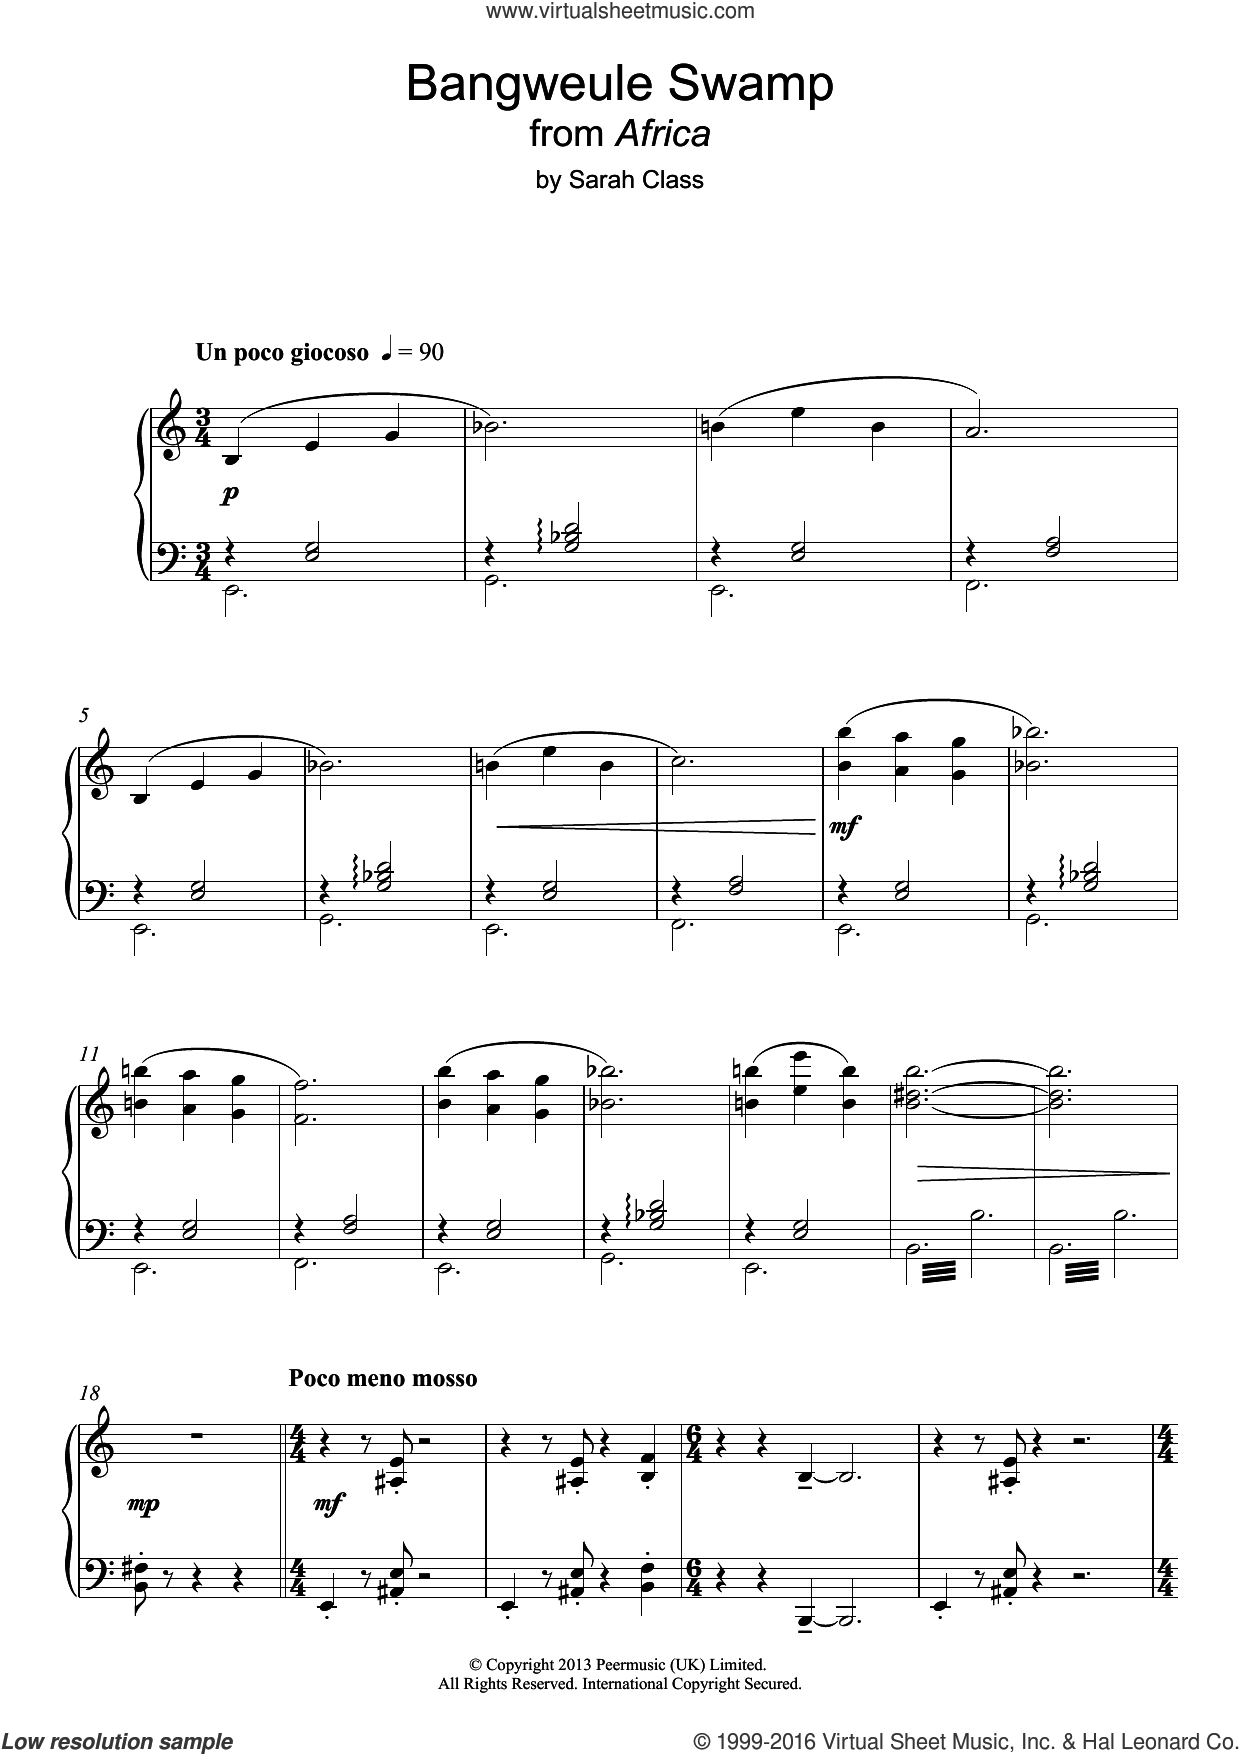 Bangweule Swamp (from 'Africa') sheet music for piano solo by Sarah Class, intermediate skill level